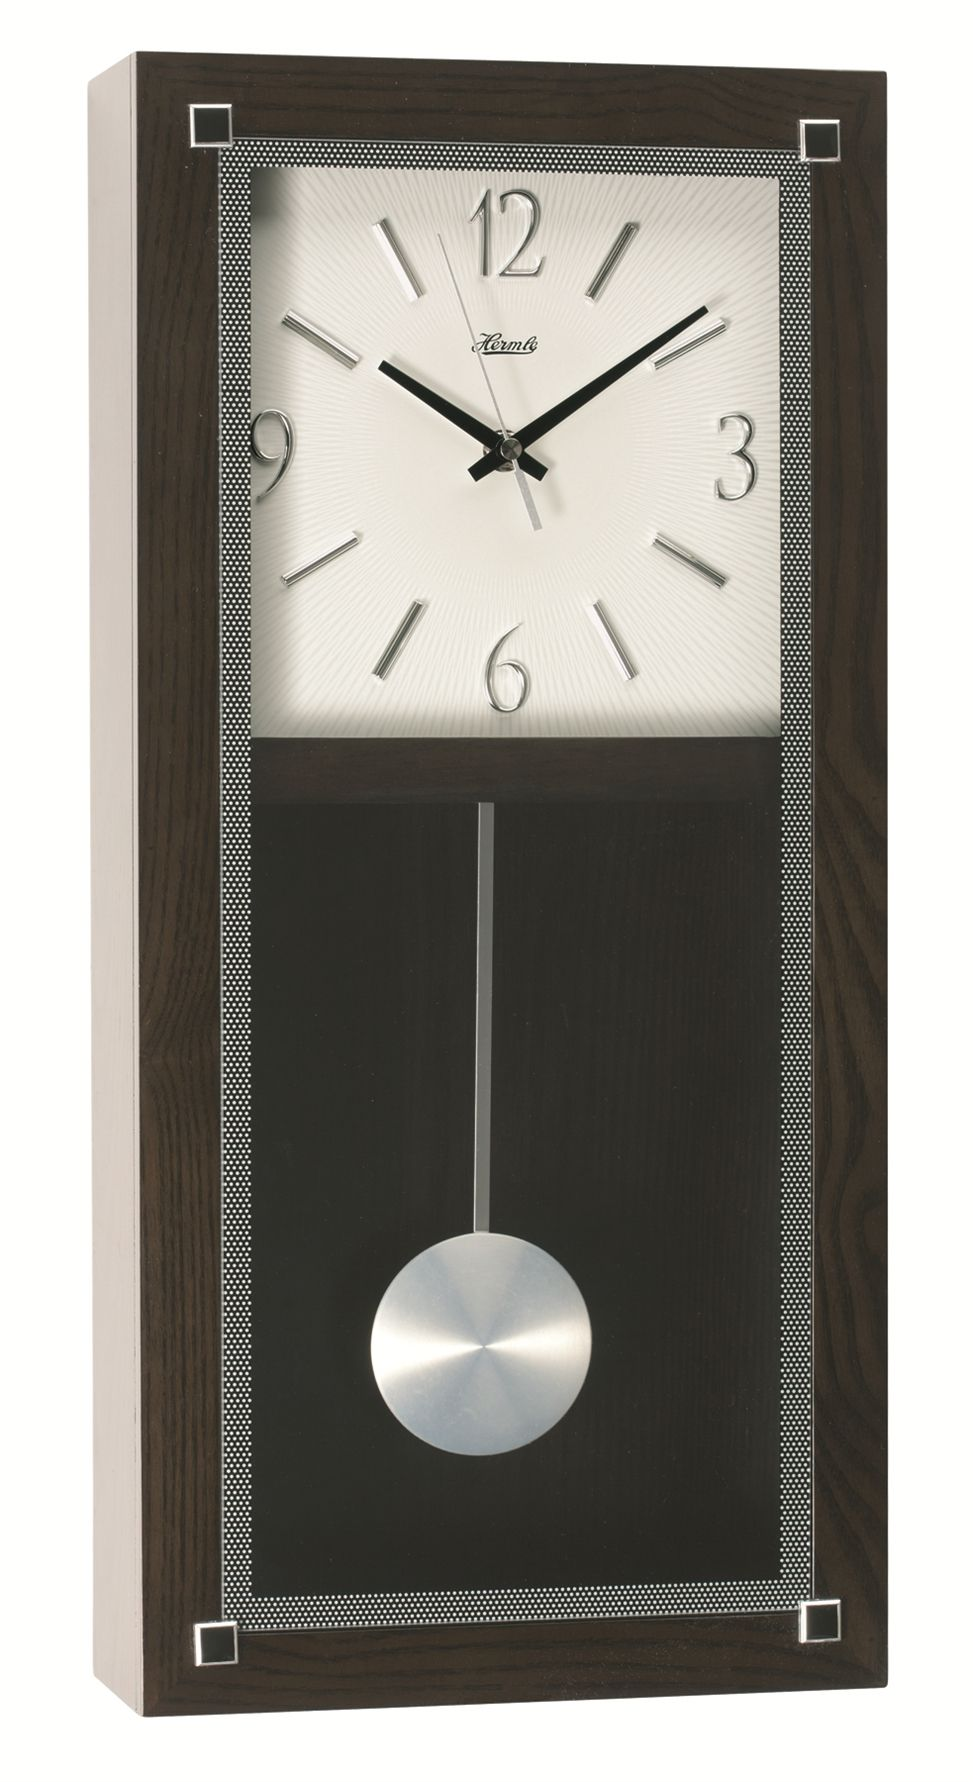 Add A Contemporary Look To Your Room With This Hermle Battery Operated Pendulum Clock The Modern Play Of Interesting Shapeaterials Such As Gl